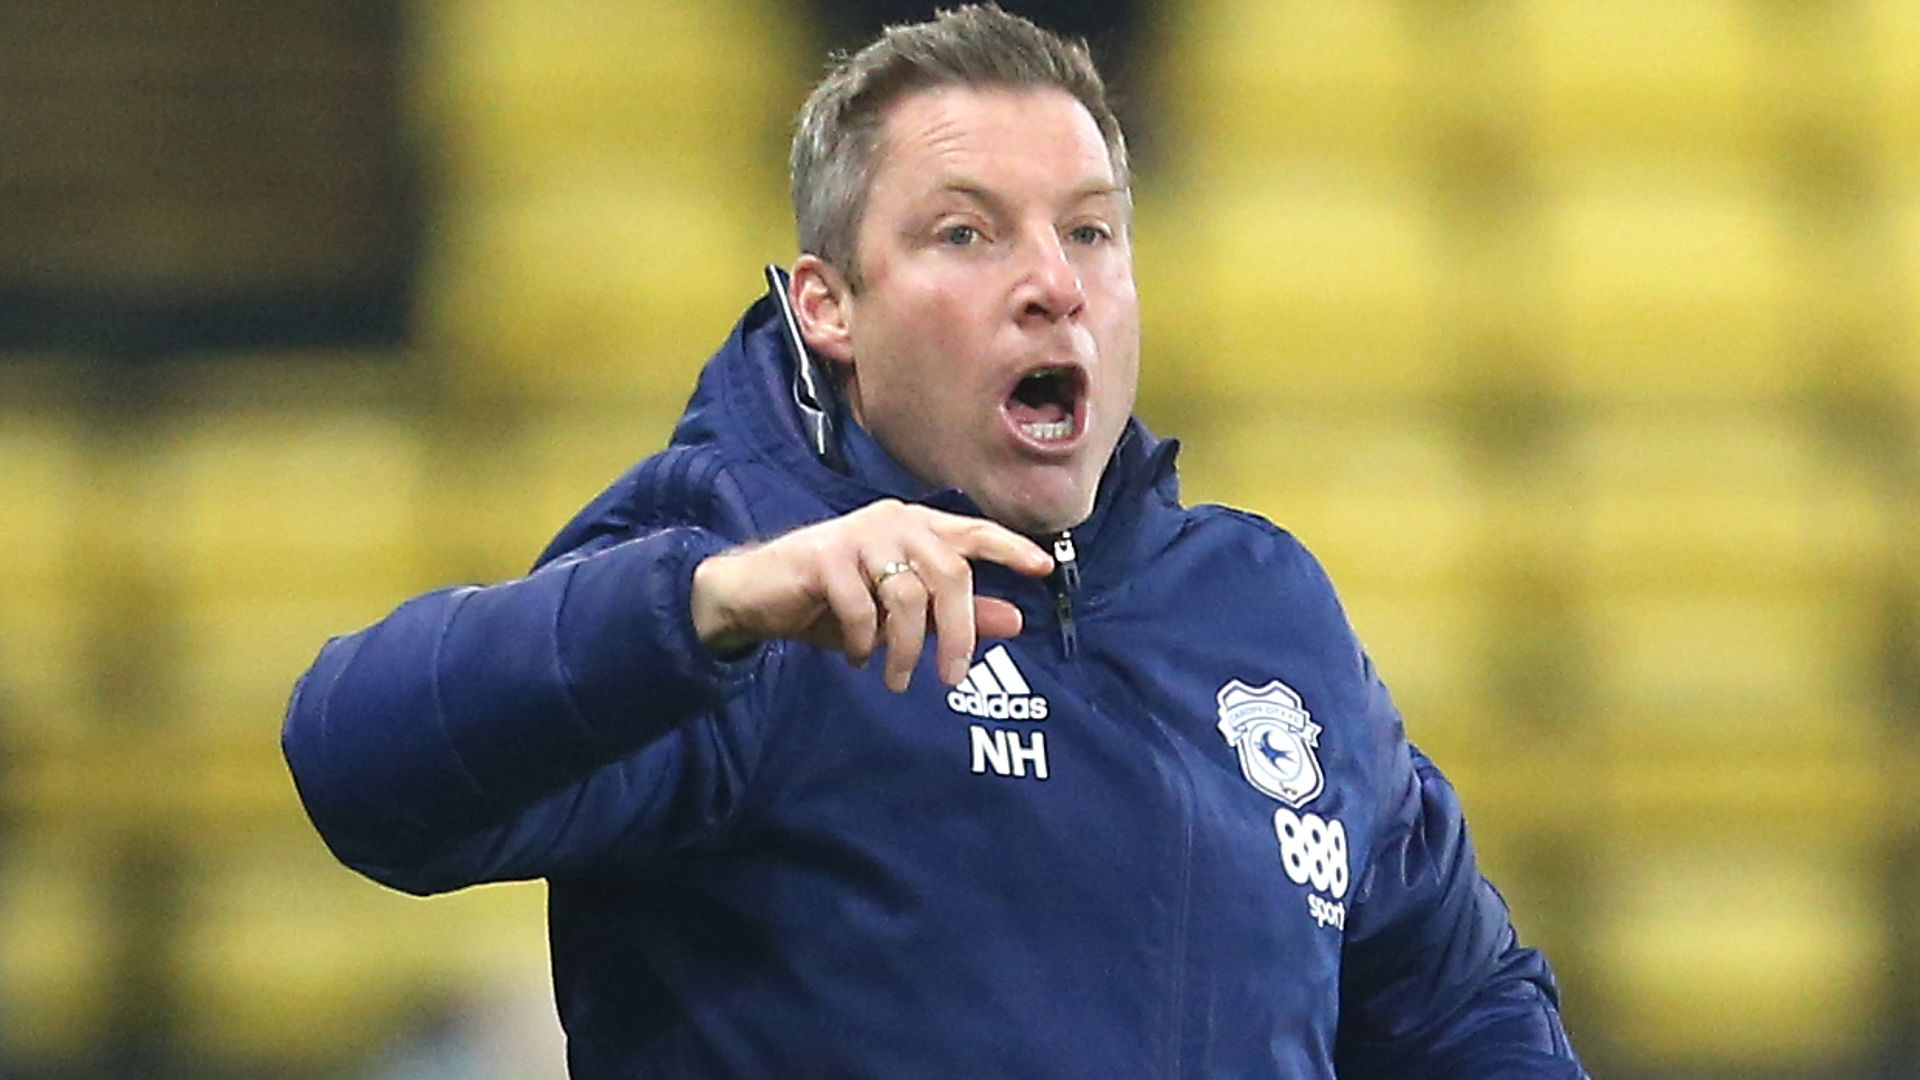 Cardiff boss Harris handed one-match ban